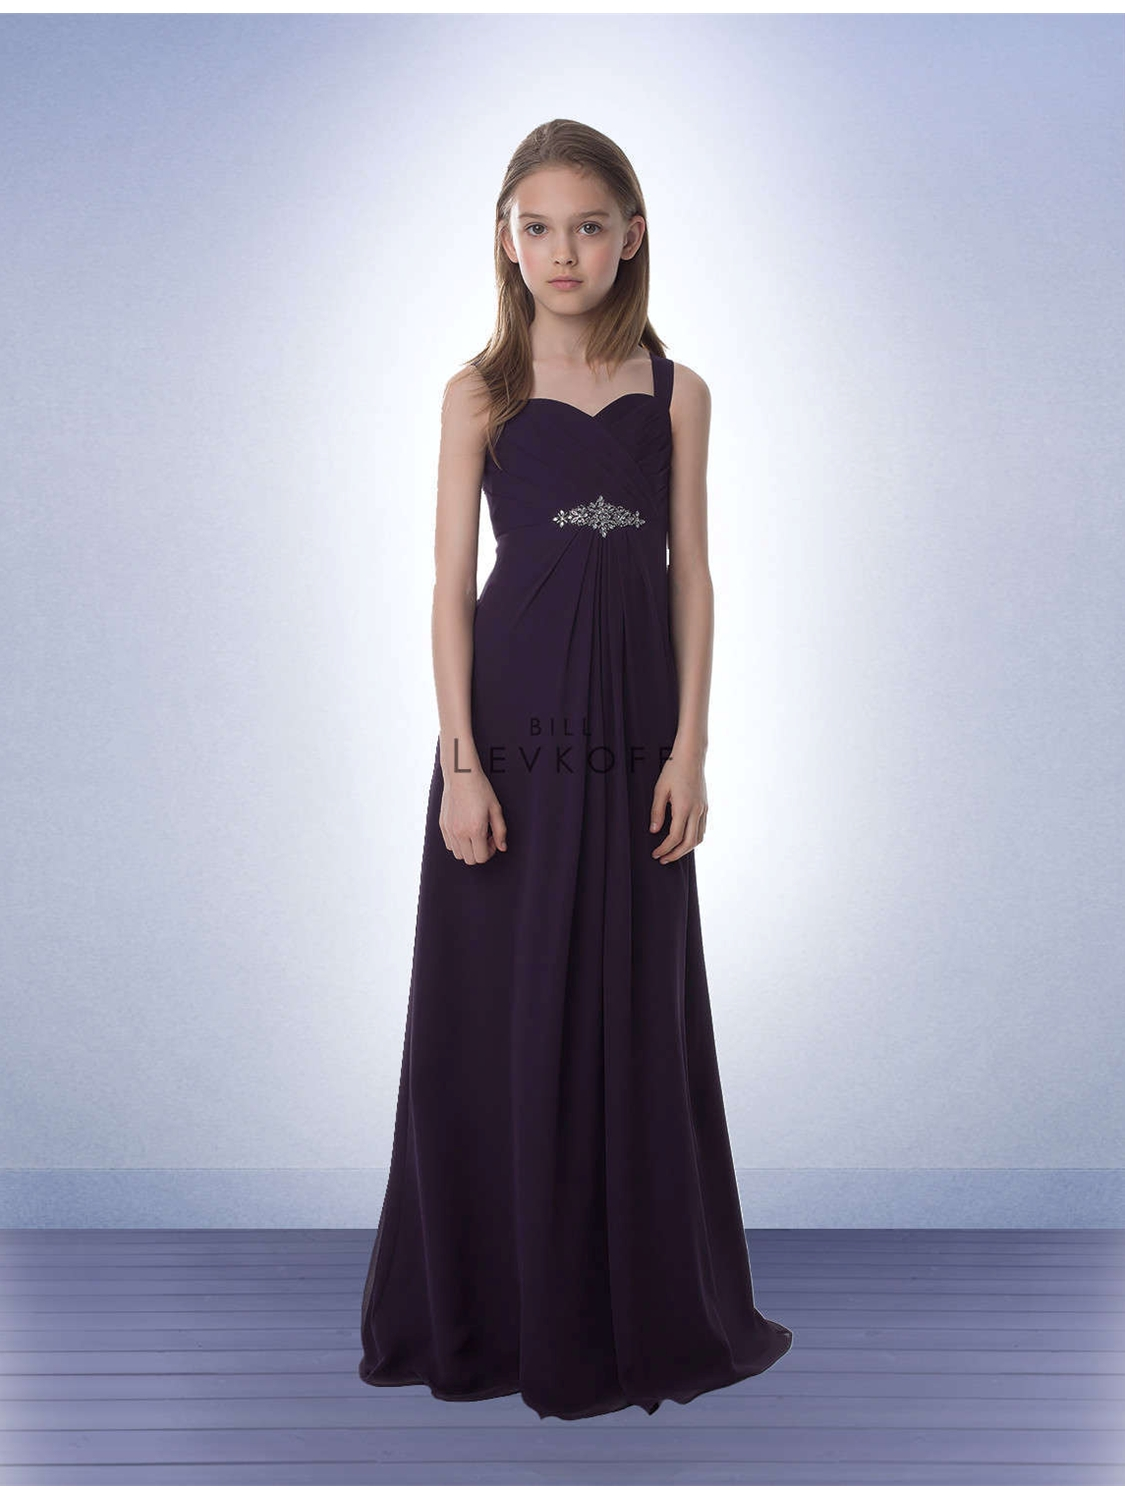 Bill levkoff junior bridesmaid dress style 77902 house of brides select color ombrellifo Image collections